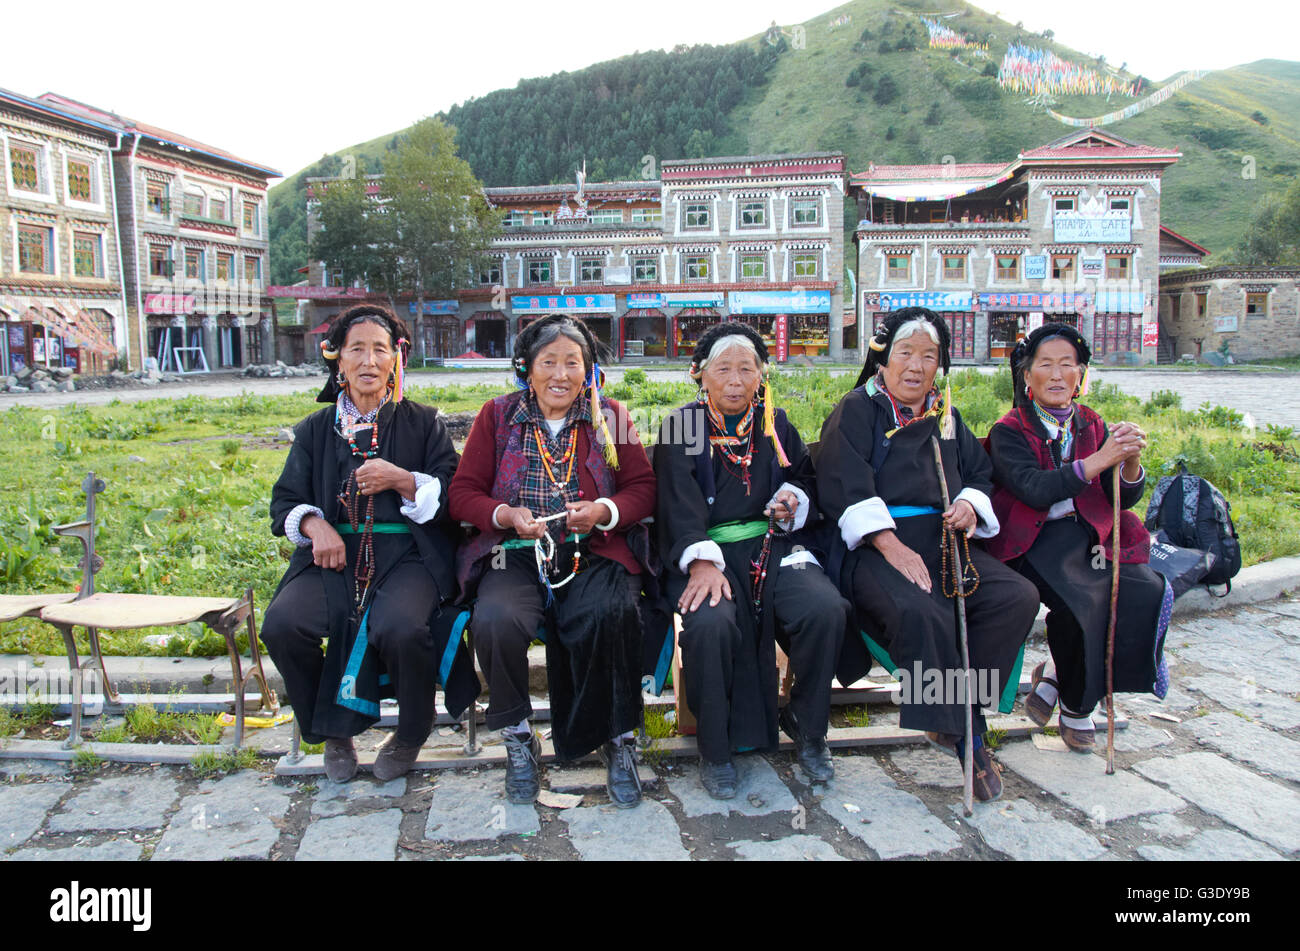 Tibetan women sitting at the main square in Tagong, former Kham region in Sichuan province - Stock Image